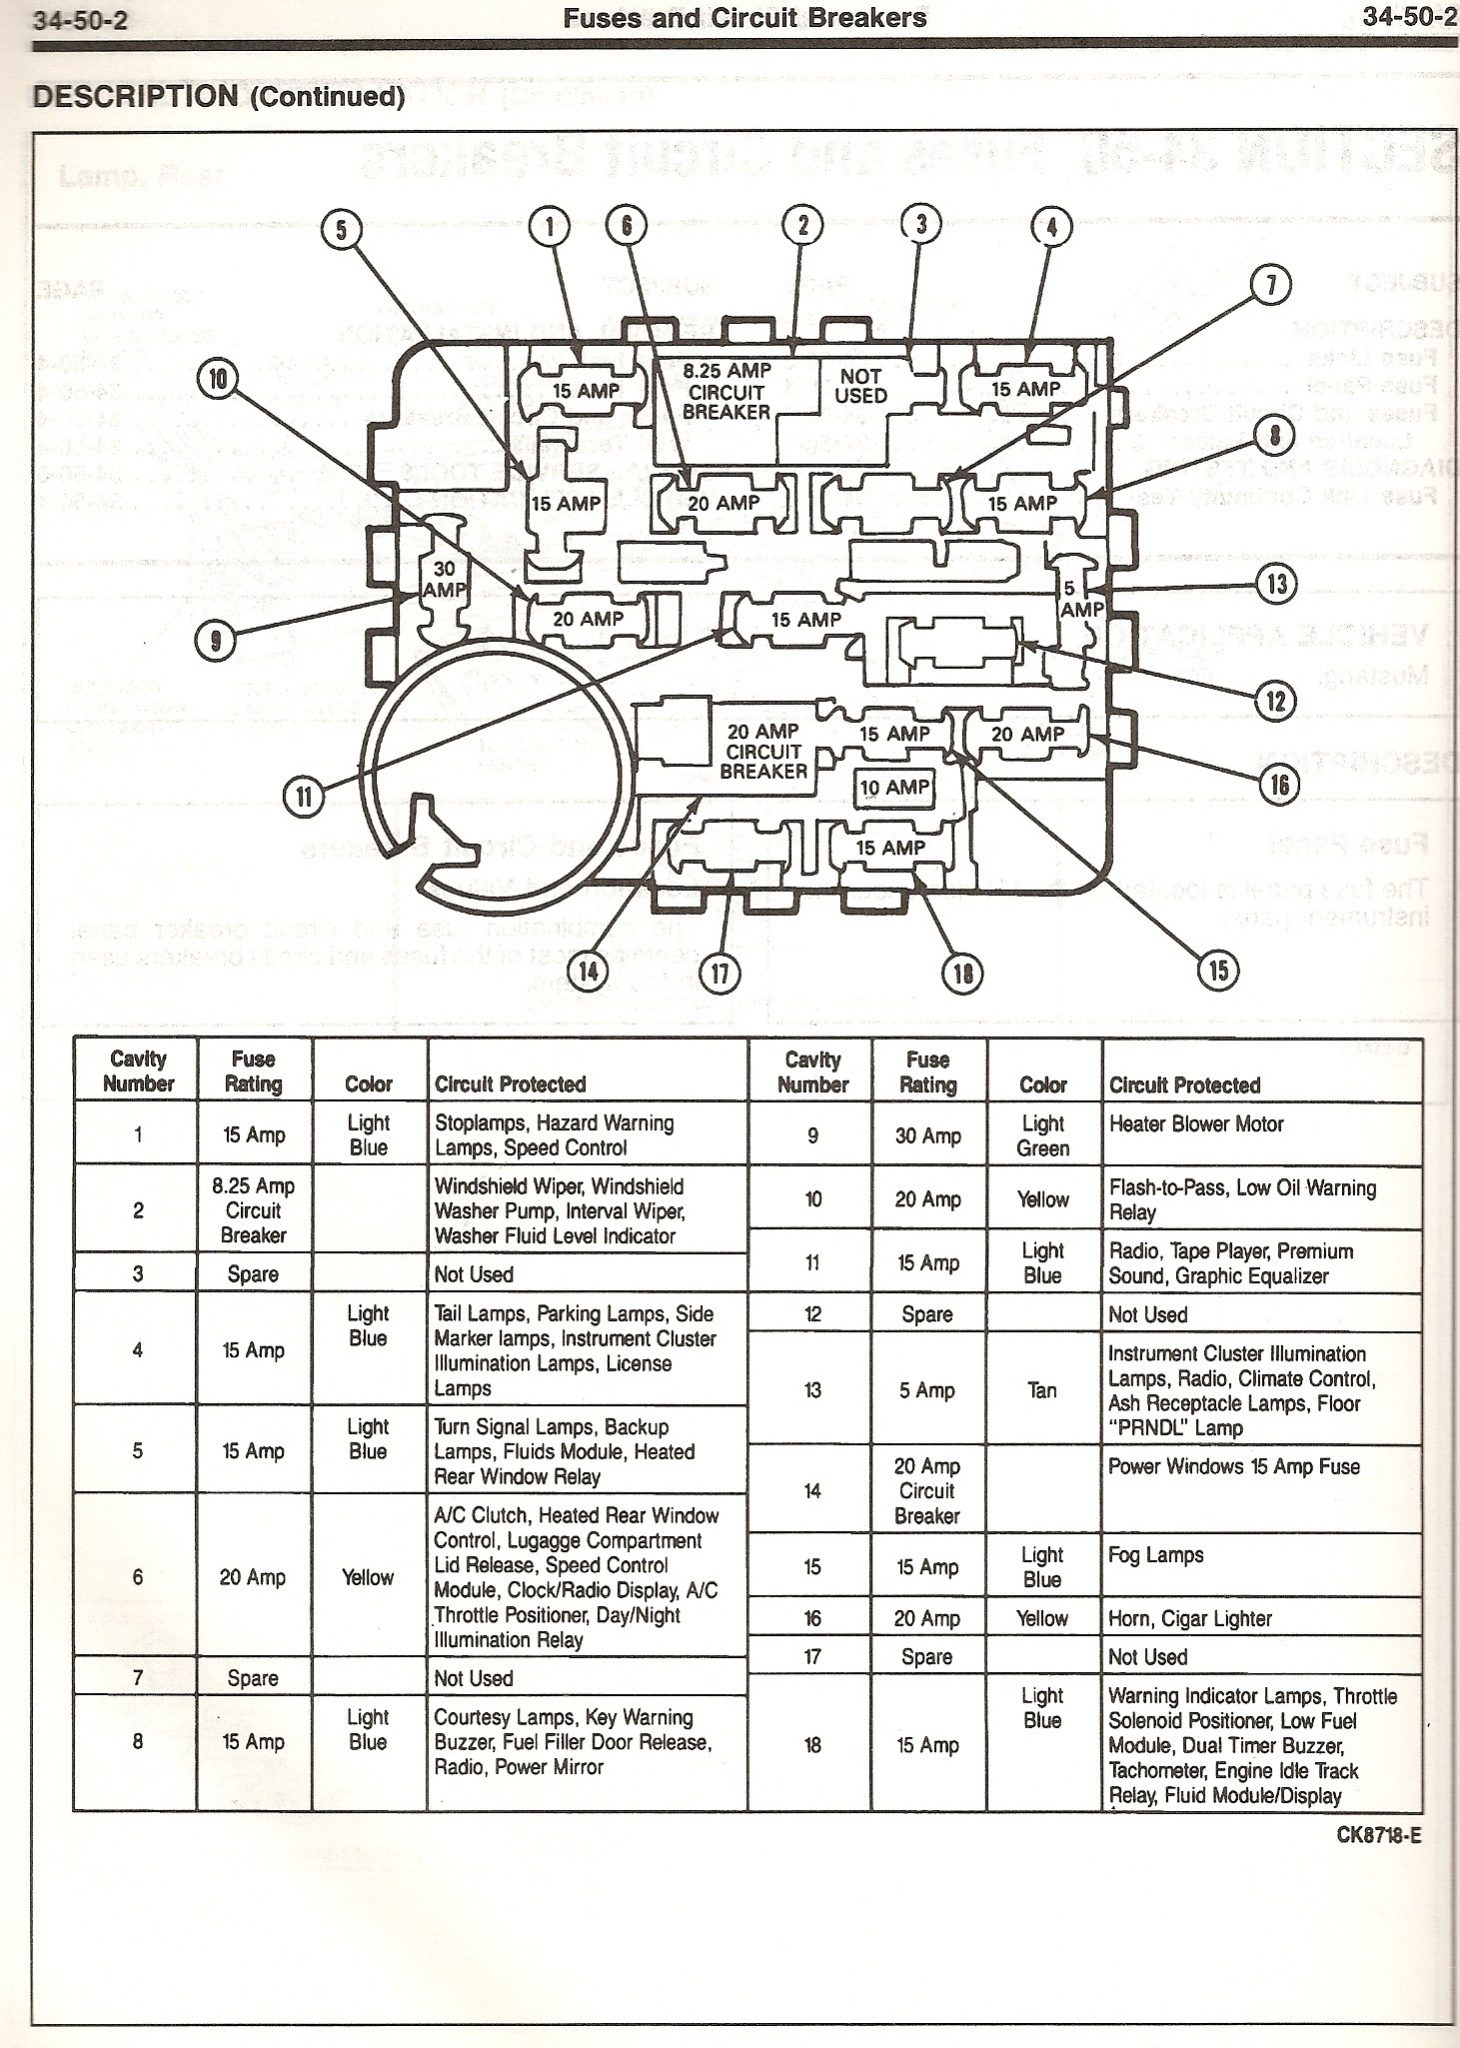 91 na 300zx fuse box wiring diagram data schema Frontier Fuse Box 90 300zx fuse box layout basic electronics wiring diagram 91 na 300zx fuse box